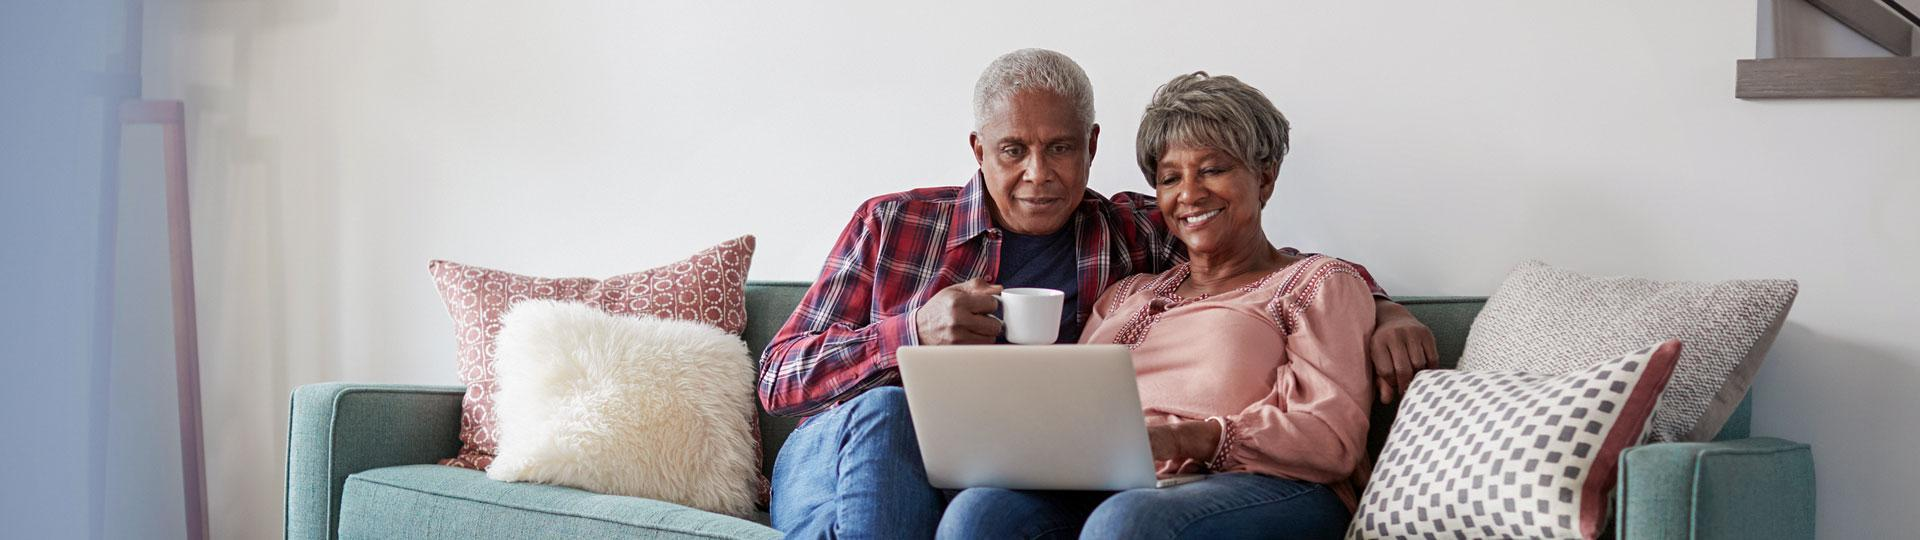 Image of a senior couple sitting on the couch looking at a laptop